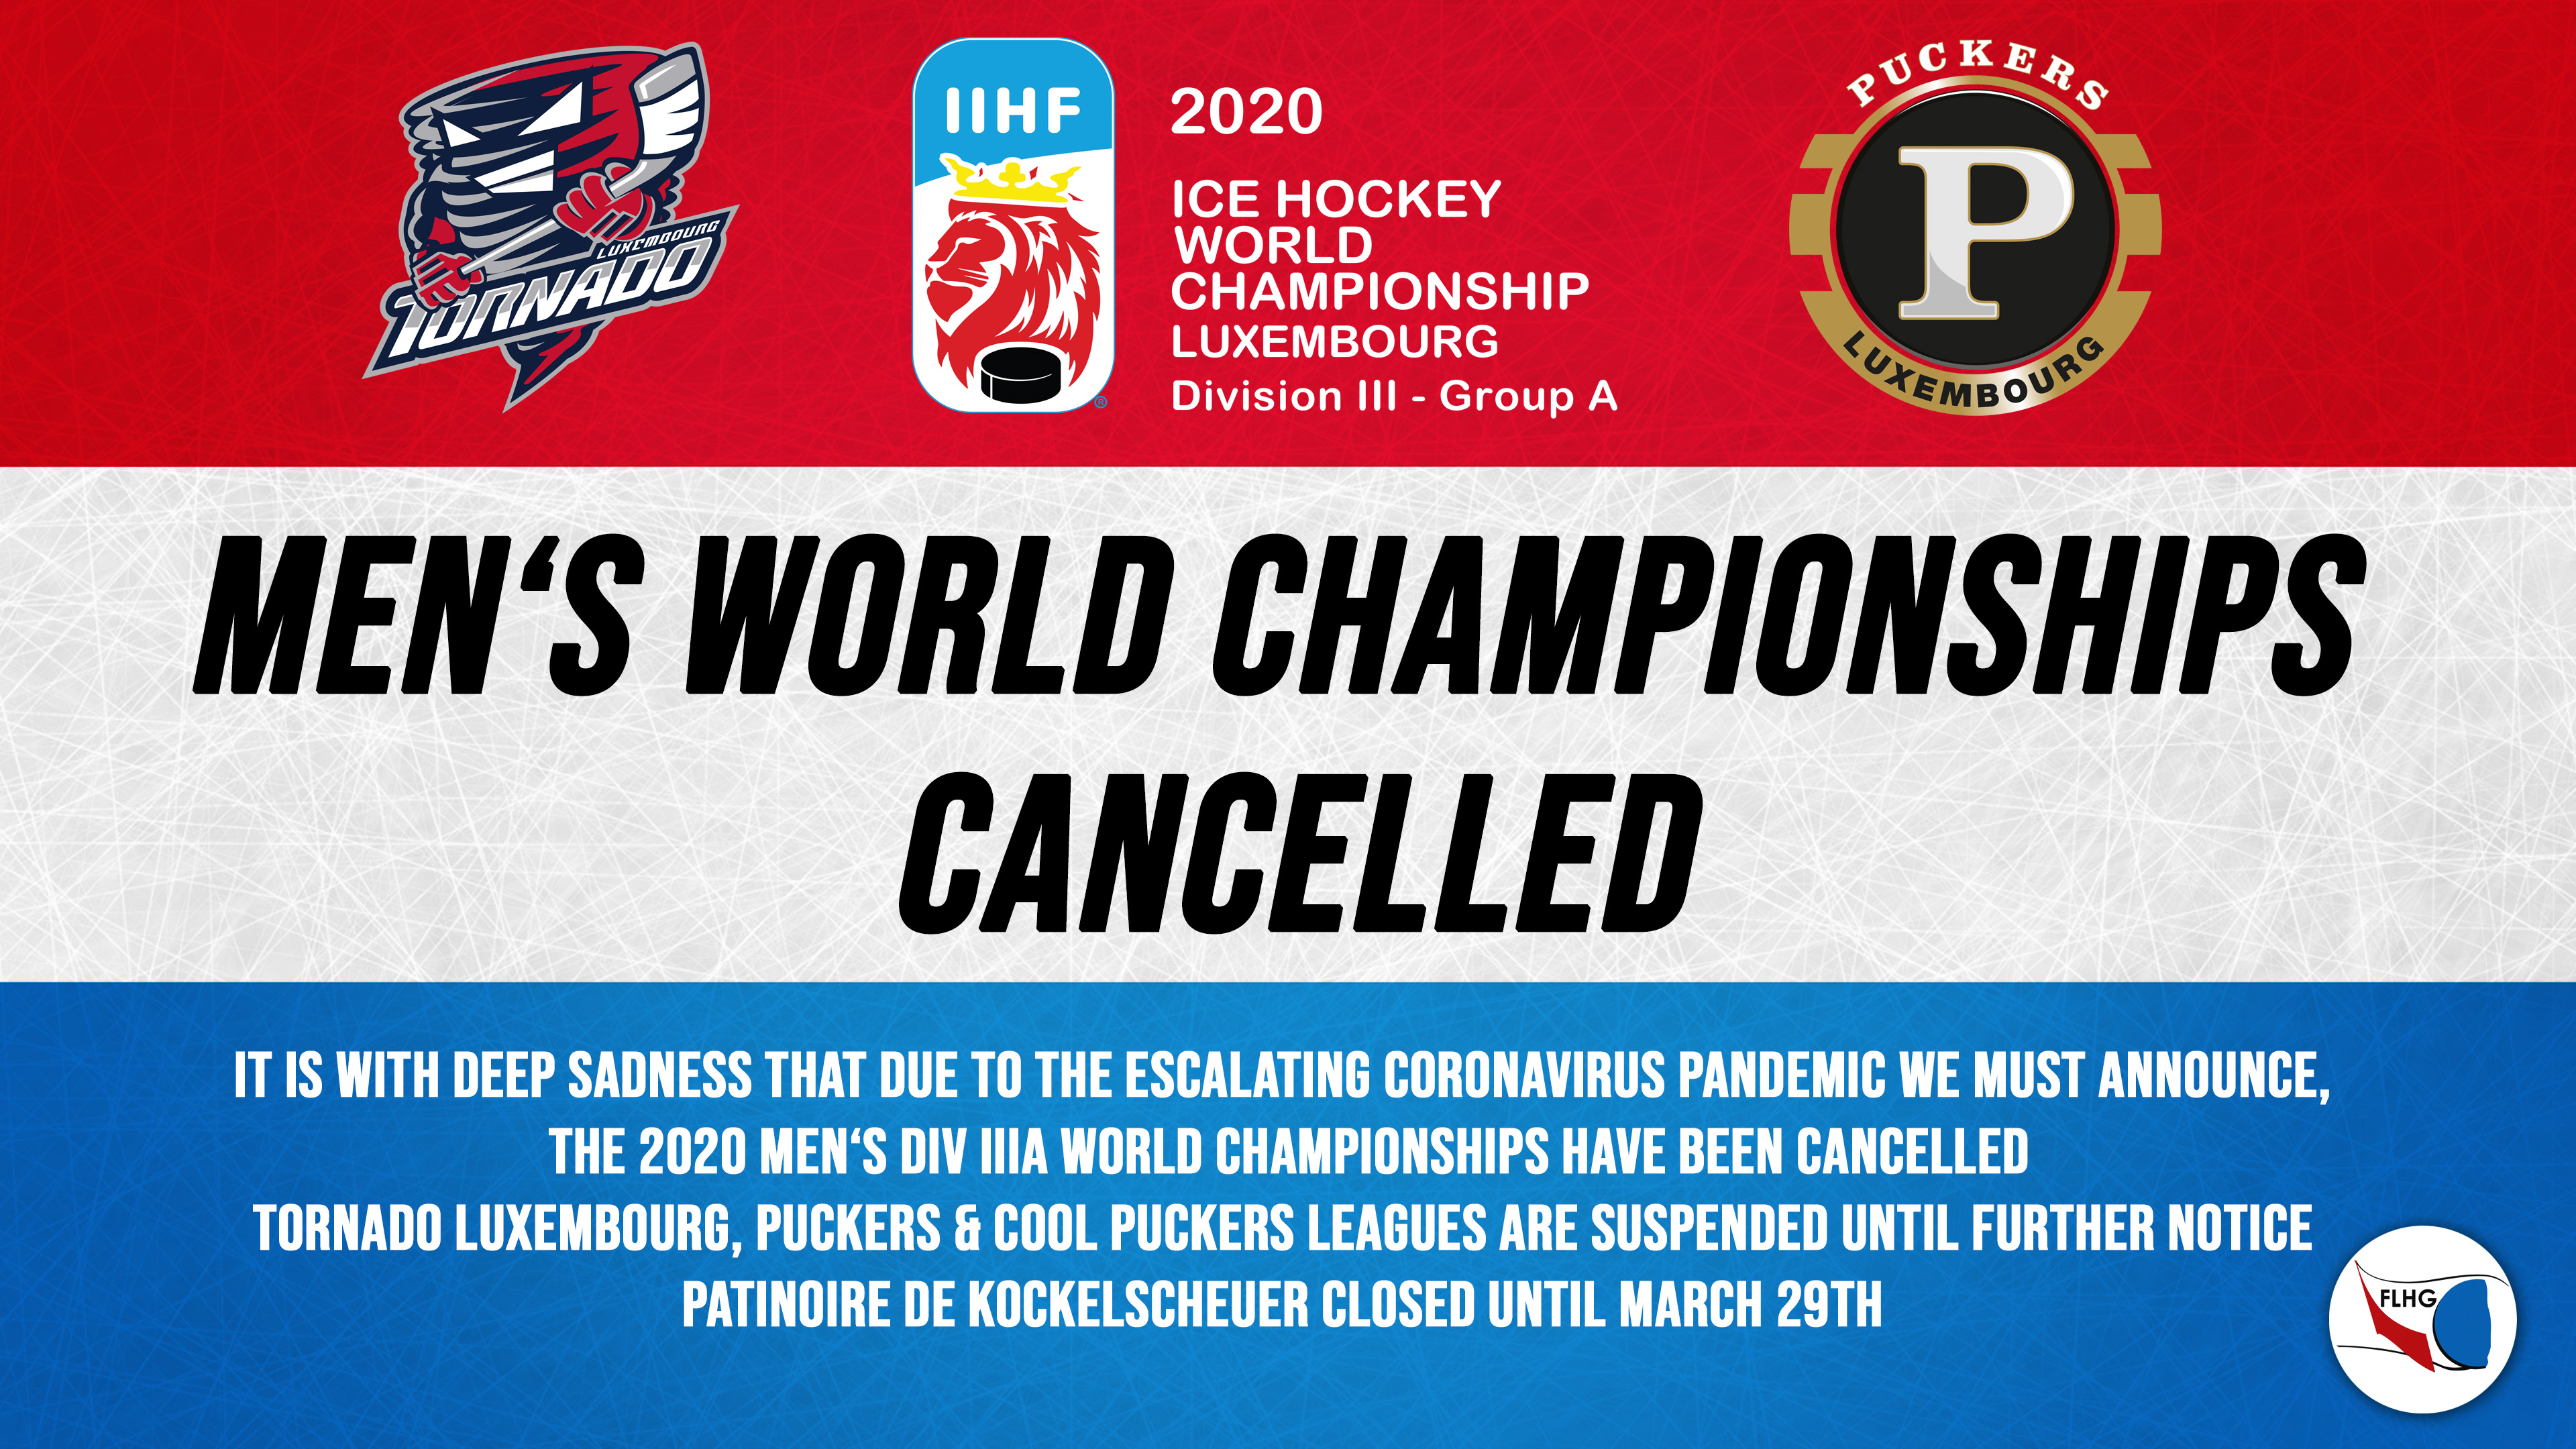 MEN's World Championships cancelled, French leagues suspended, Kockelscheuer closed